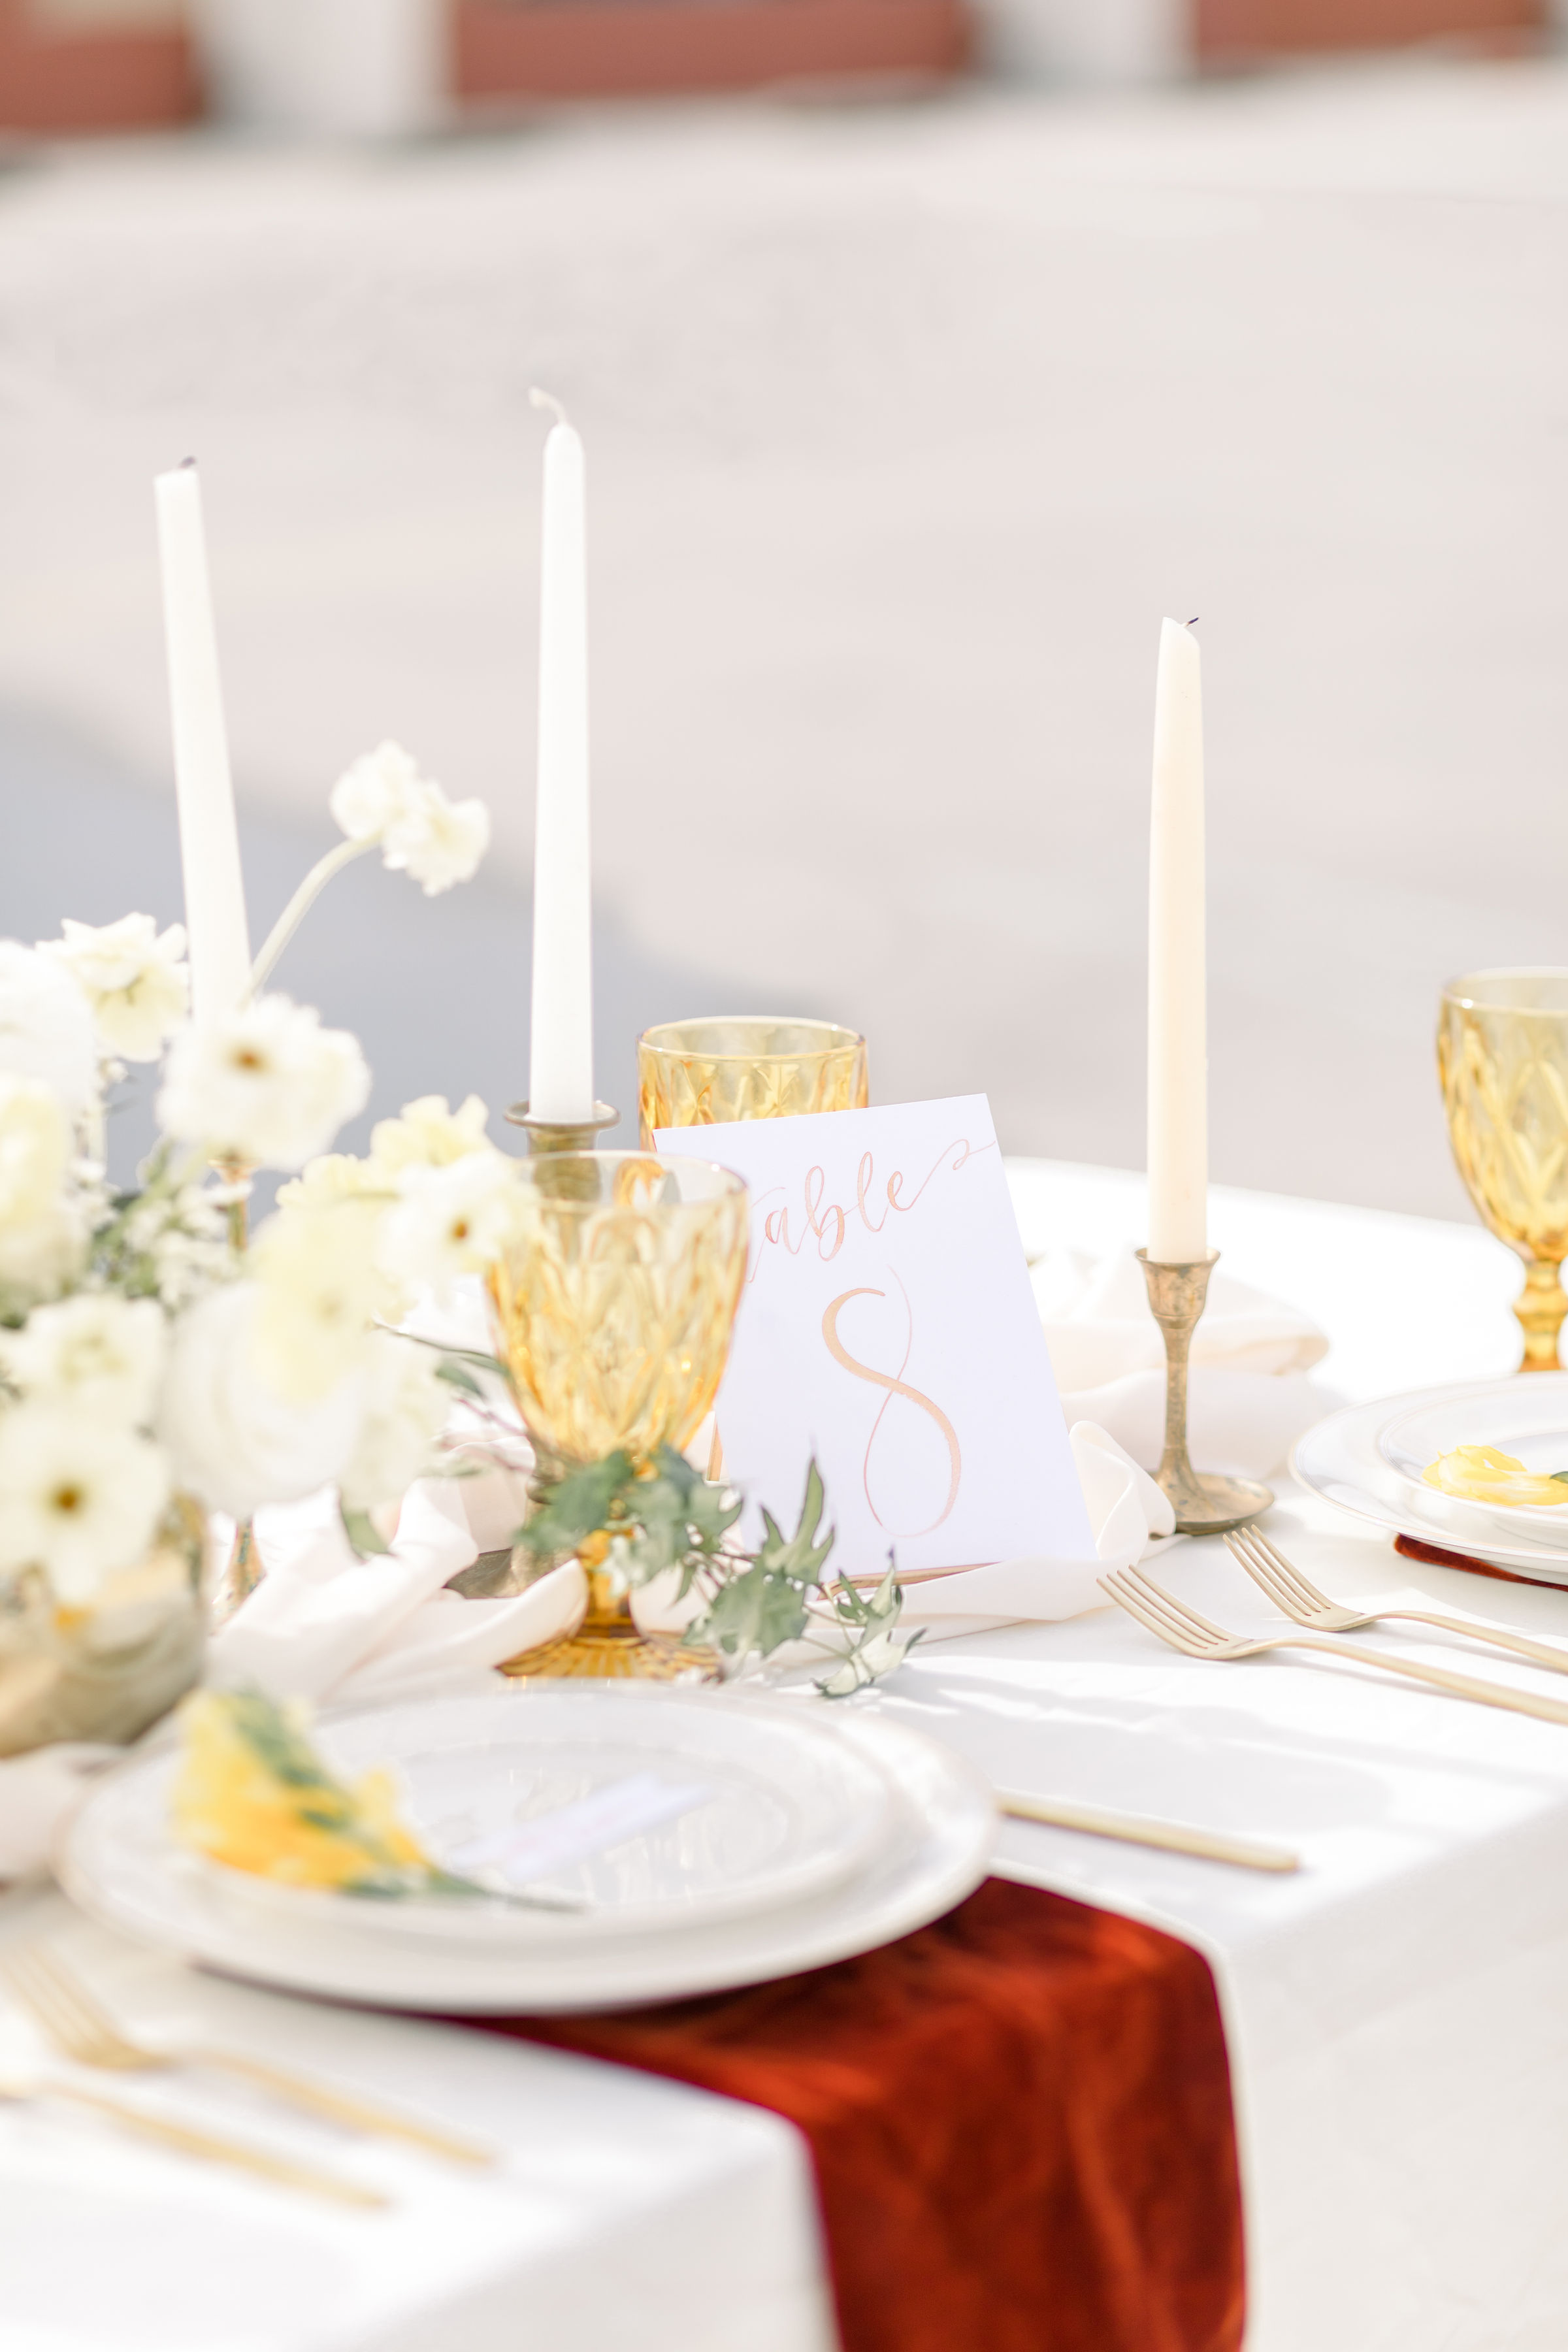 StephanieWeberPhotography-Gold Tablescape – Sam Allen Creates Watercolor Table Numbers